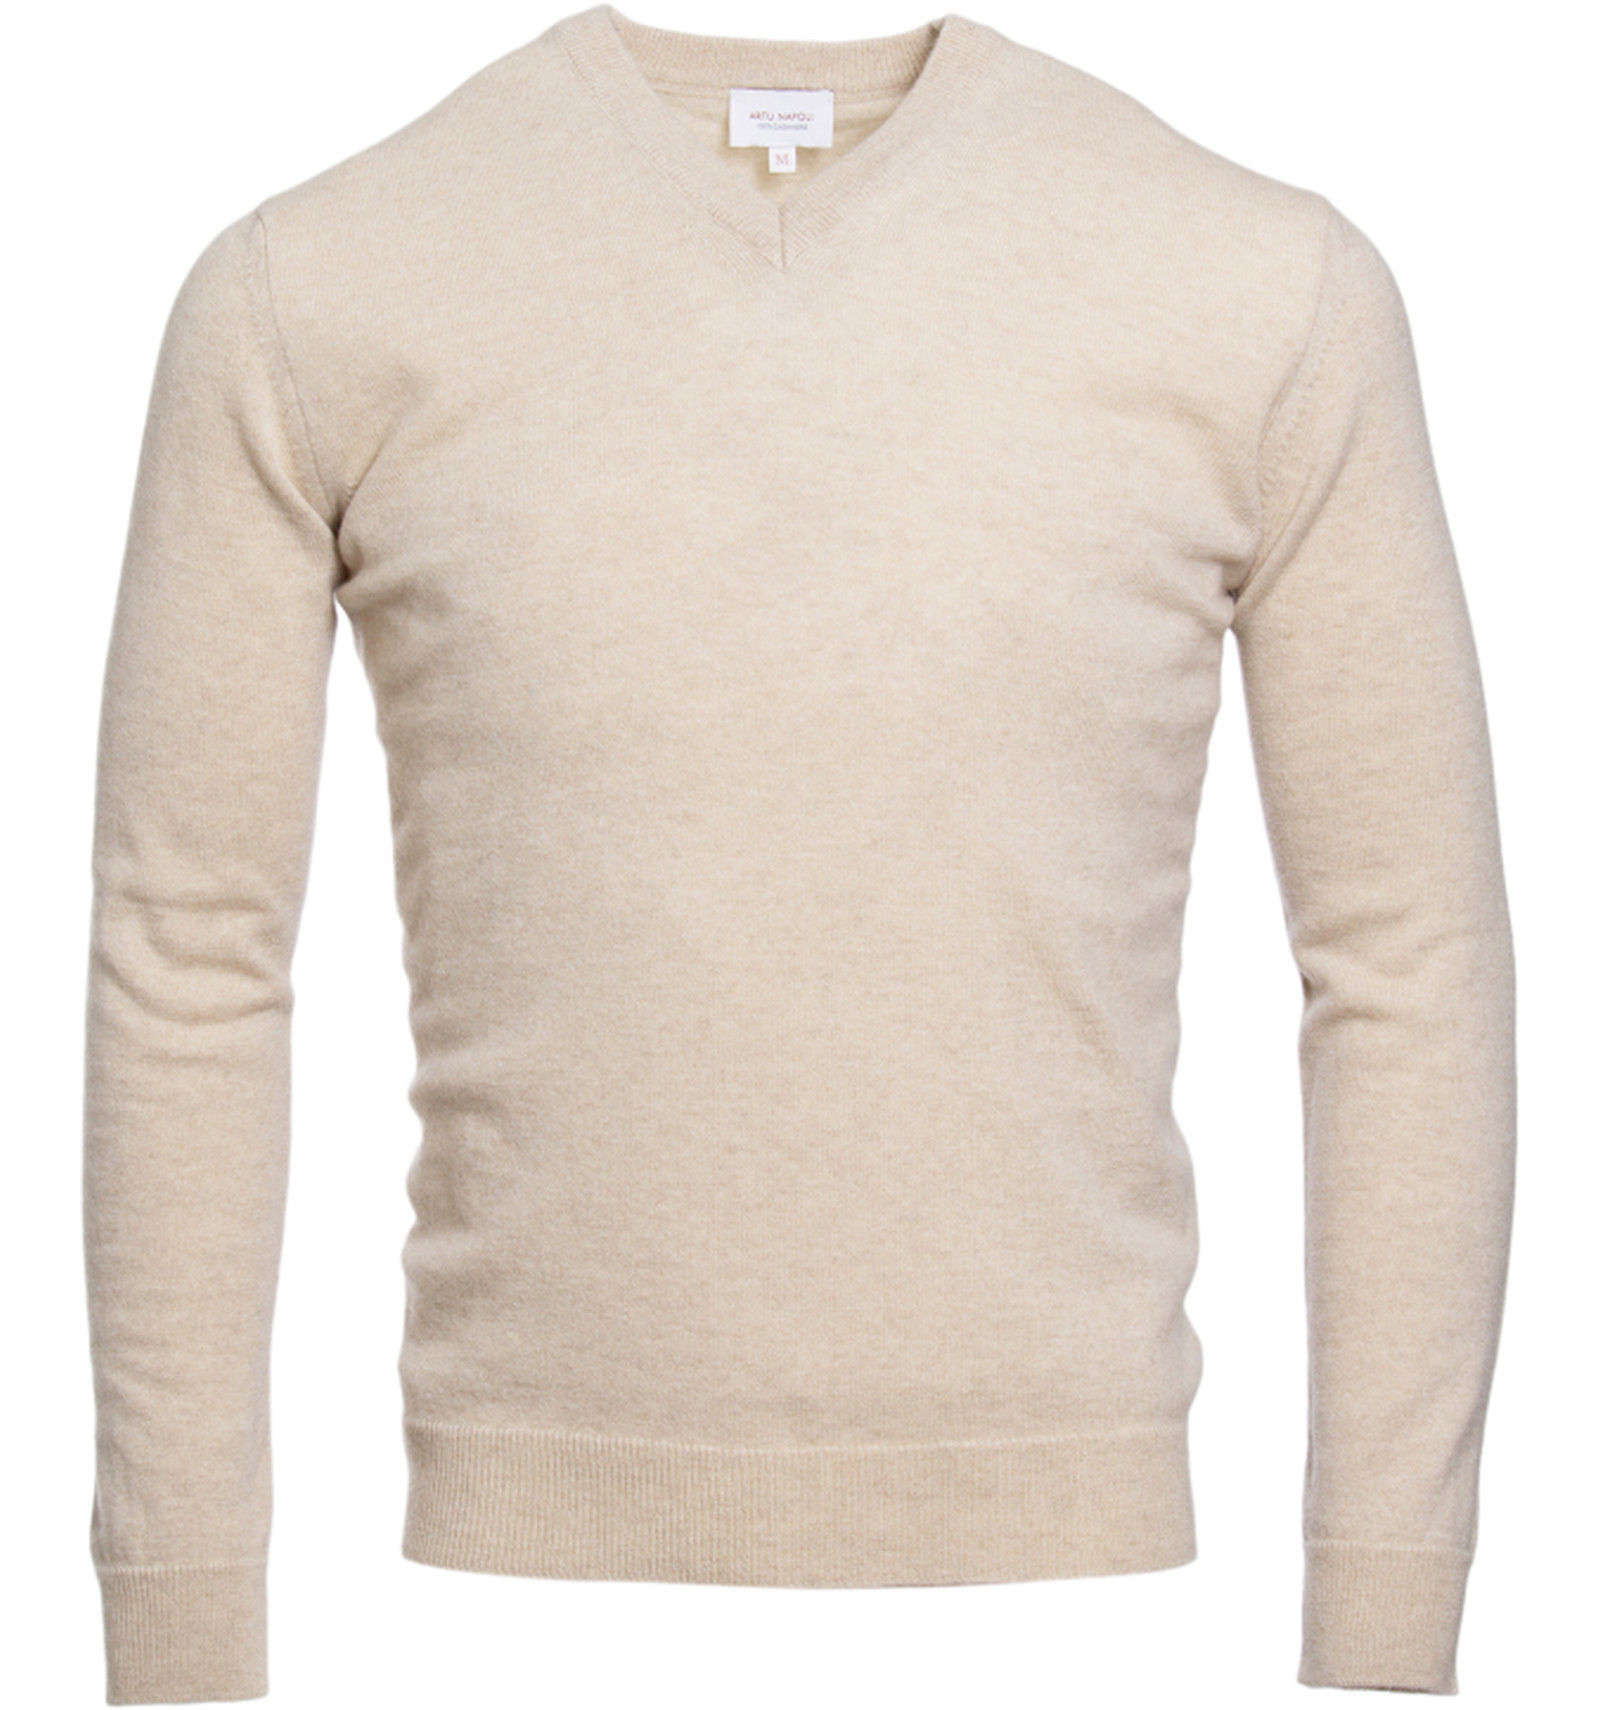 100-cashmere-v-neck-luxury-edition.jpg